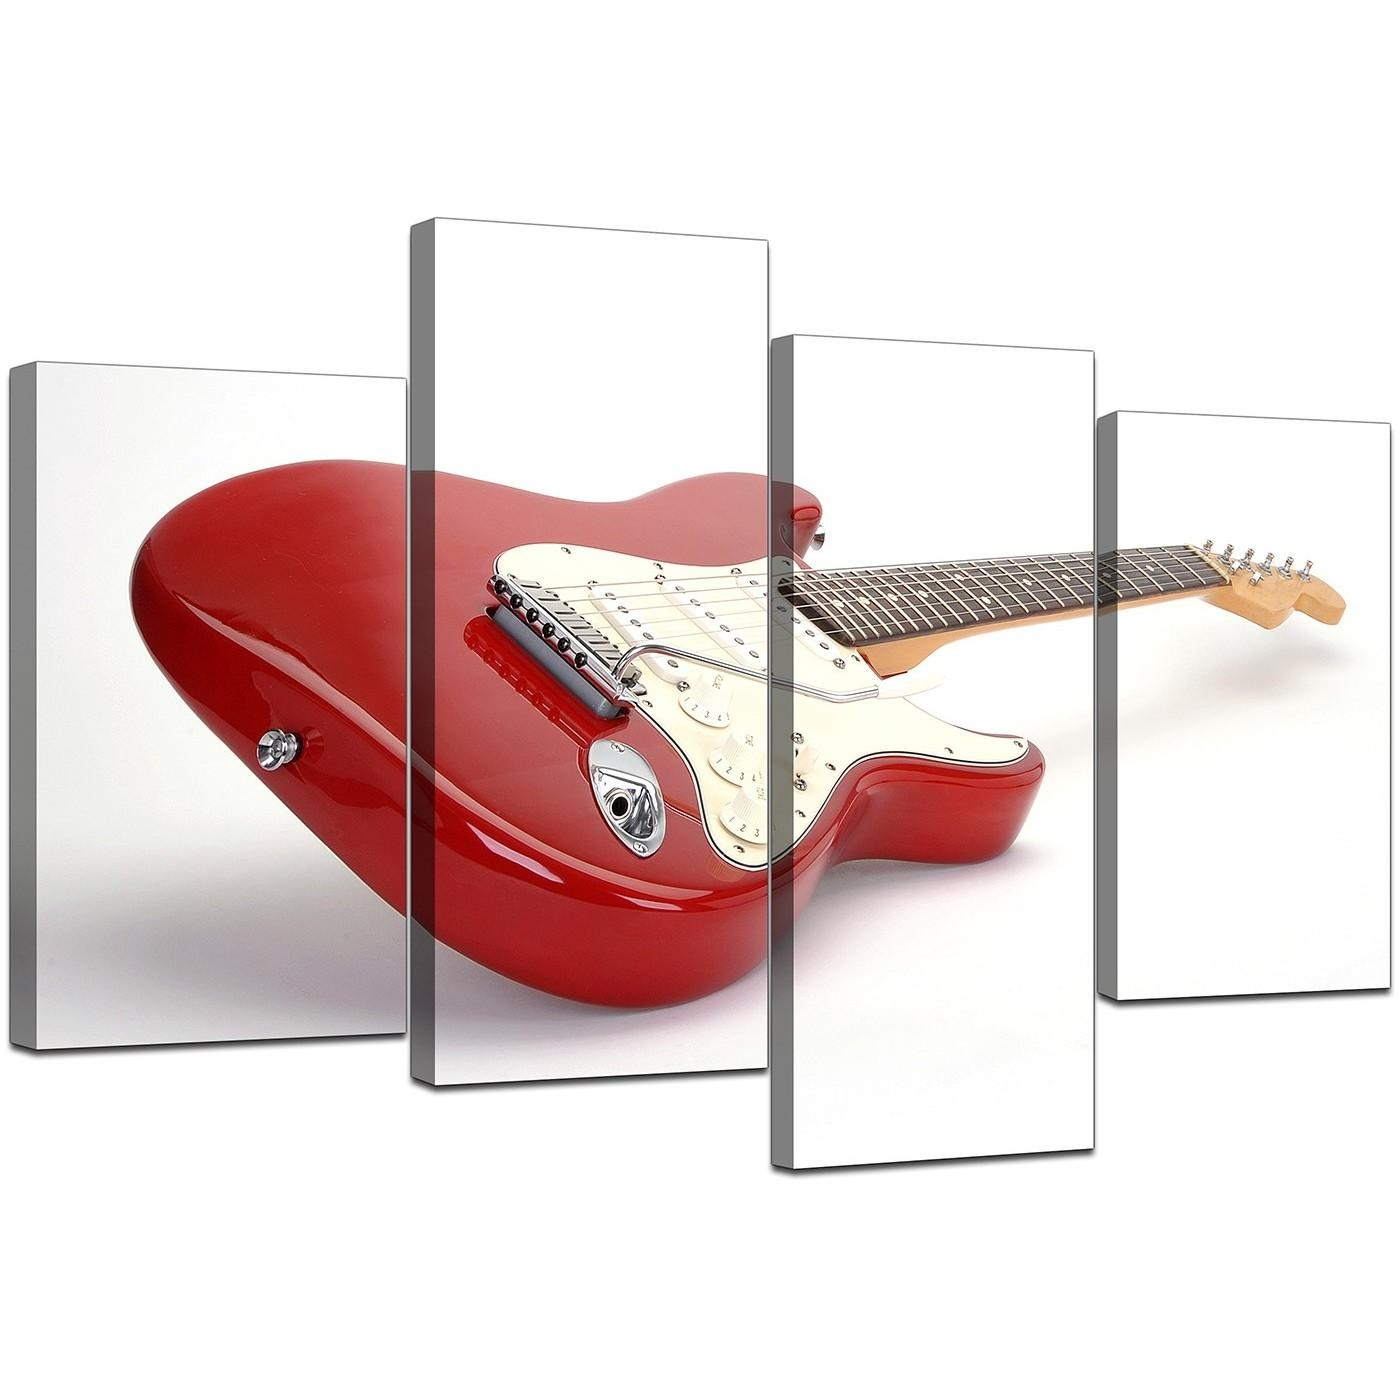 Electric Guitar Canvas Wall Art In Red – For Bedroom Inside Guitar Canvas Wall Art (Image 6 of 20)